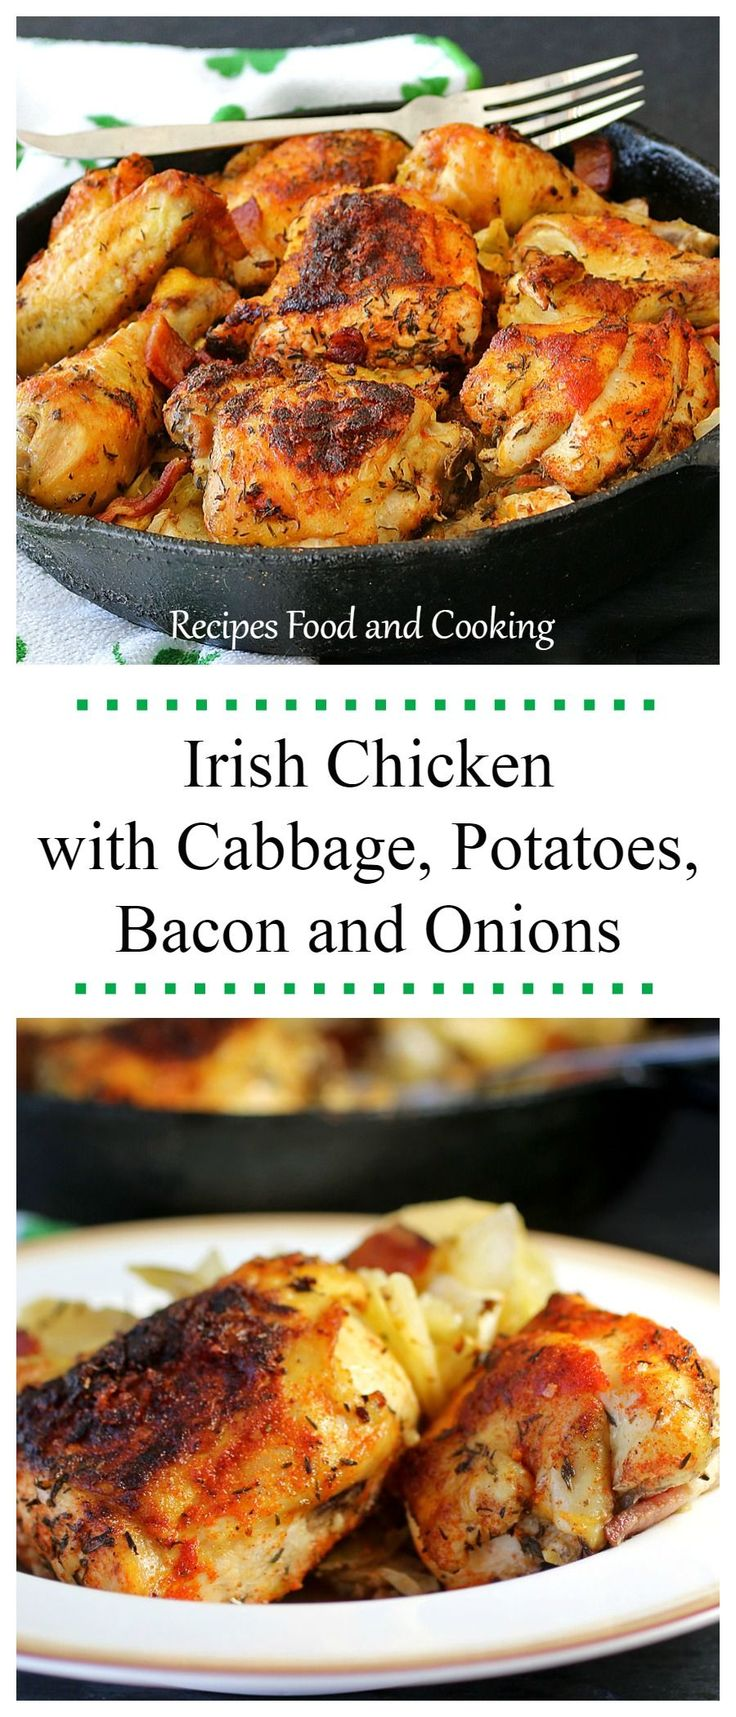 Irish Chicken with Cabbage, Potatoes, Bacon and Onions: